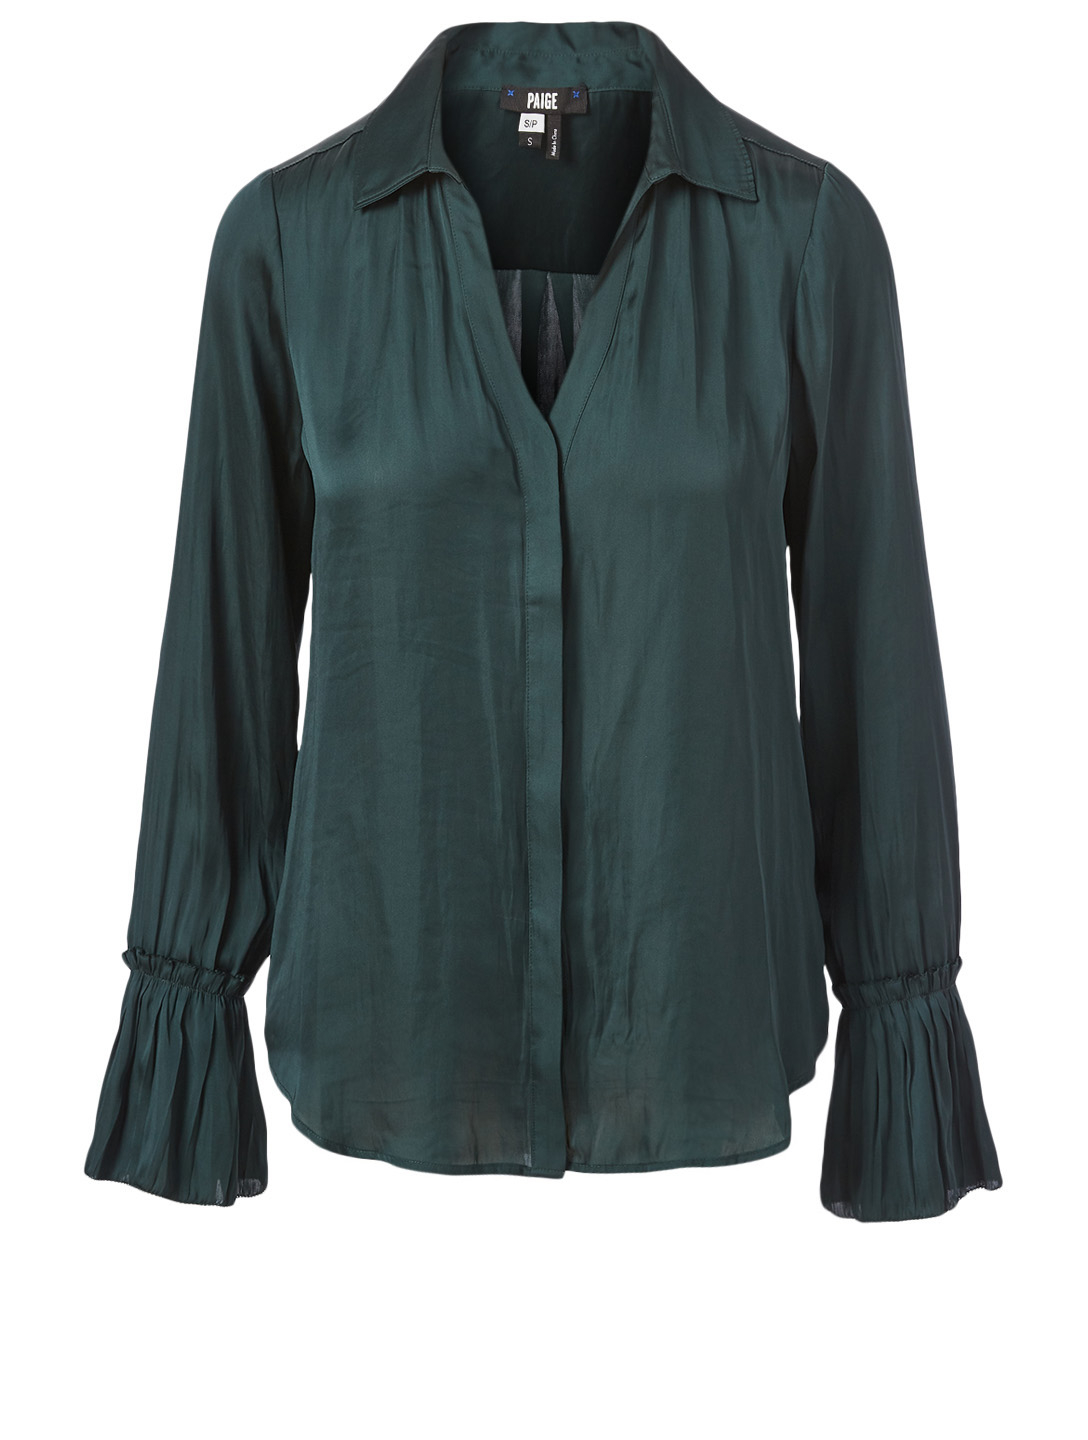 PAIGE Abriana Satin Blouse Women's Green